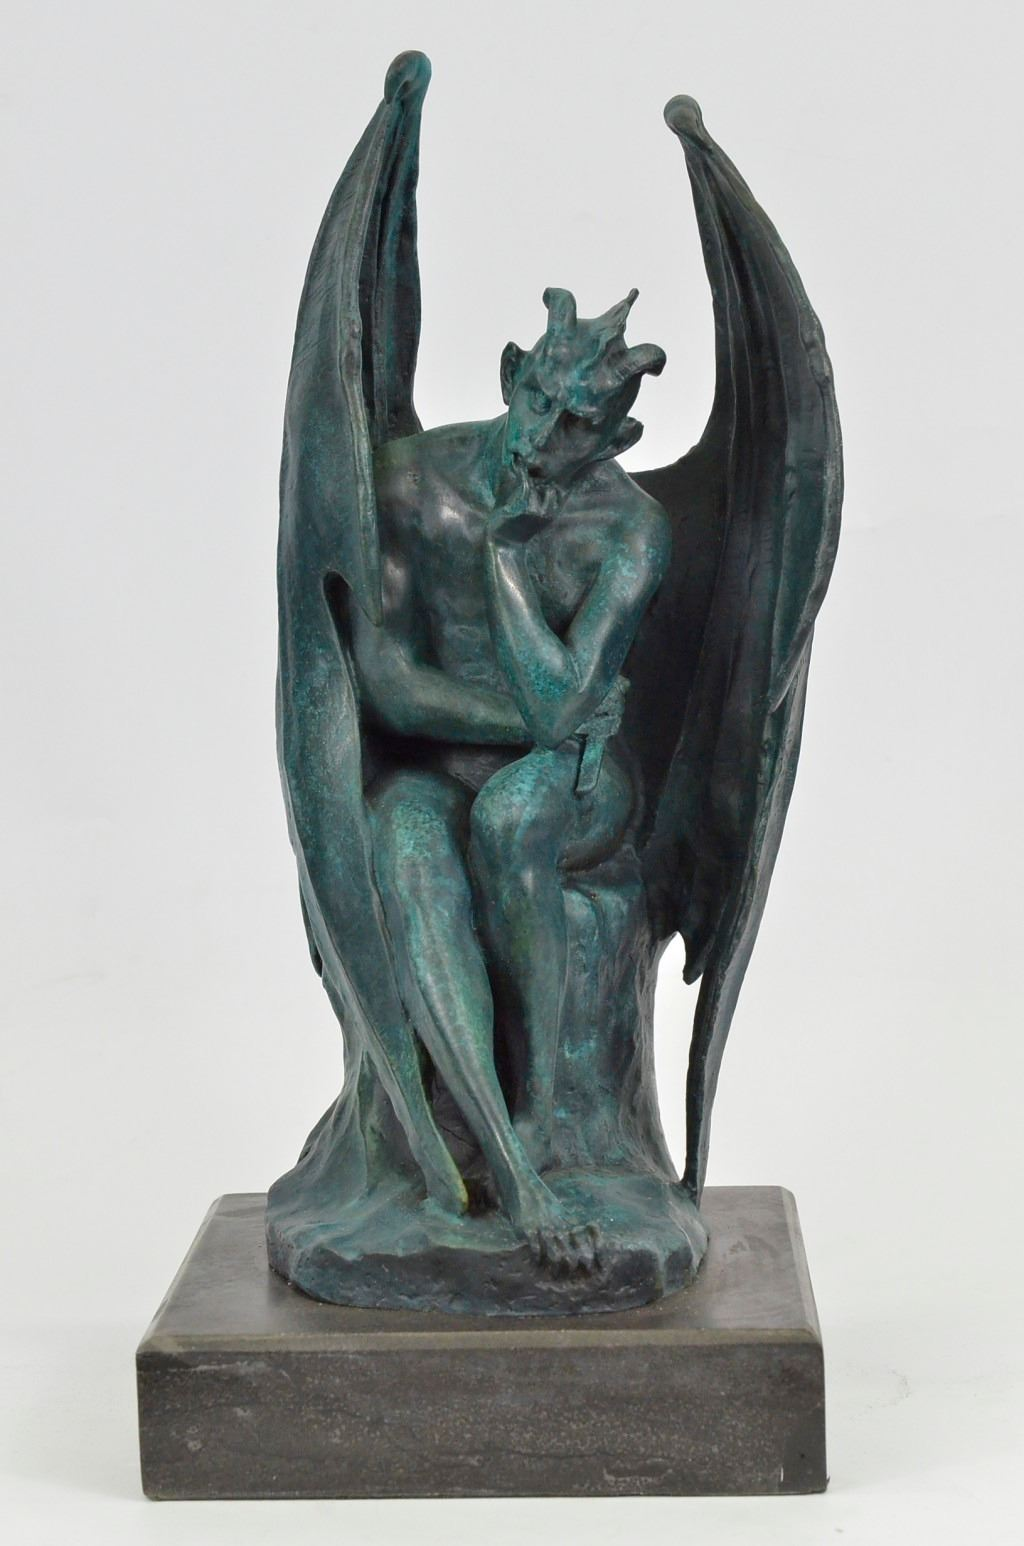 green patina devil satyr diablo dark angel bronze sculpture by milo on marble base. Black Bedroom Furniture Sets. Home Design Ideas